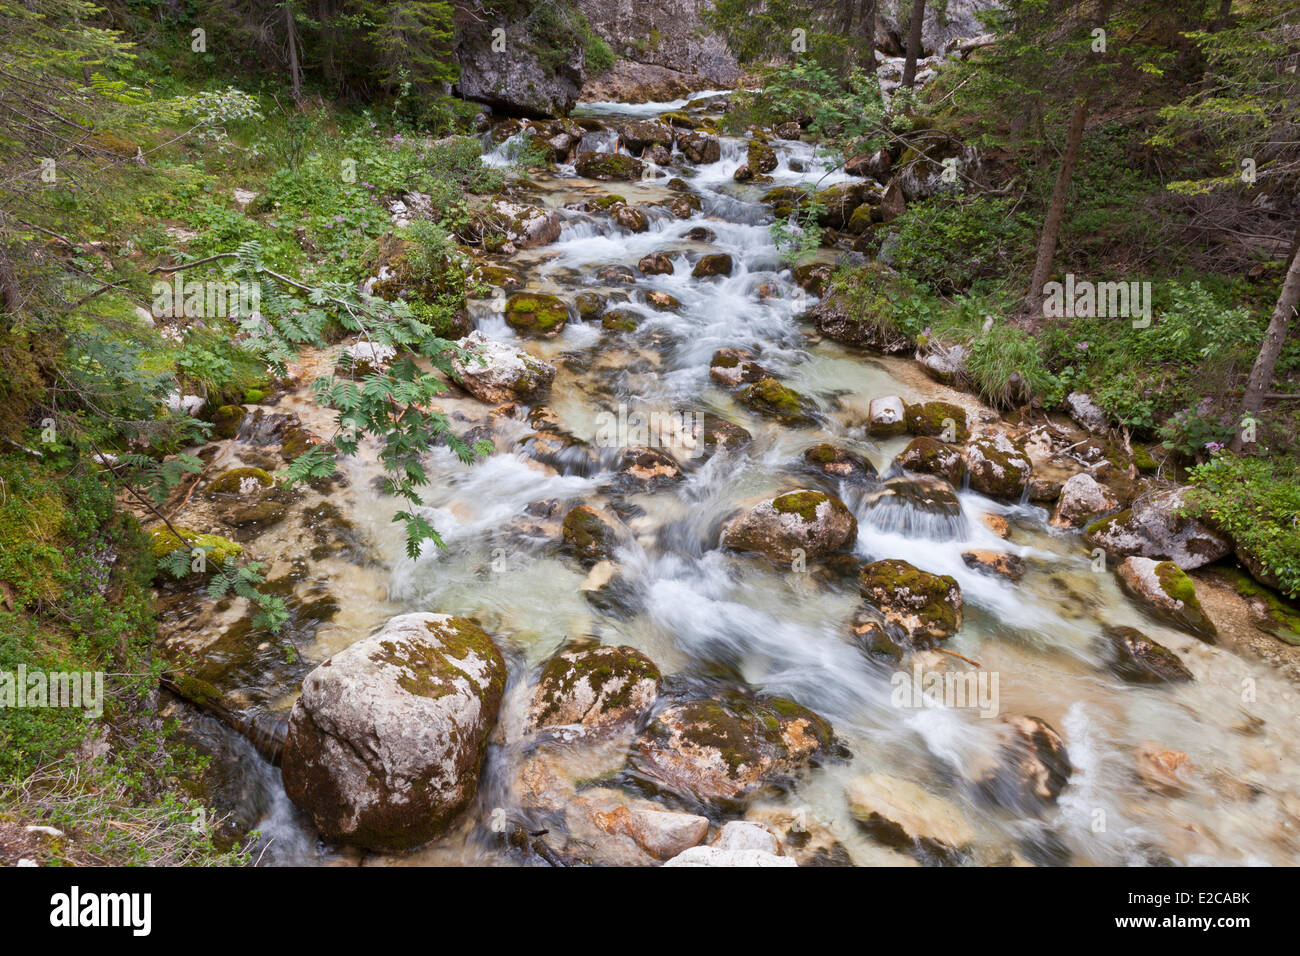 Italy, Venetia, province of Belluno, Dolomites, listed as World Heritage by UNESCO, Cortina d'Ampezzo, Fanes - Stock Image